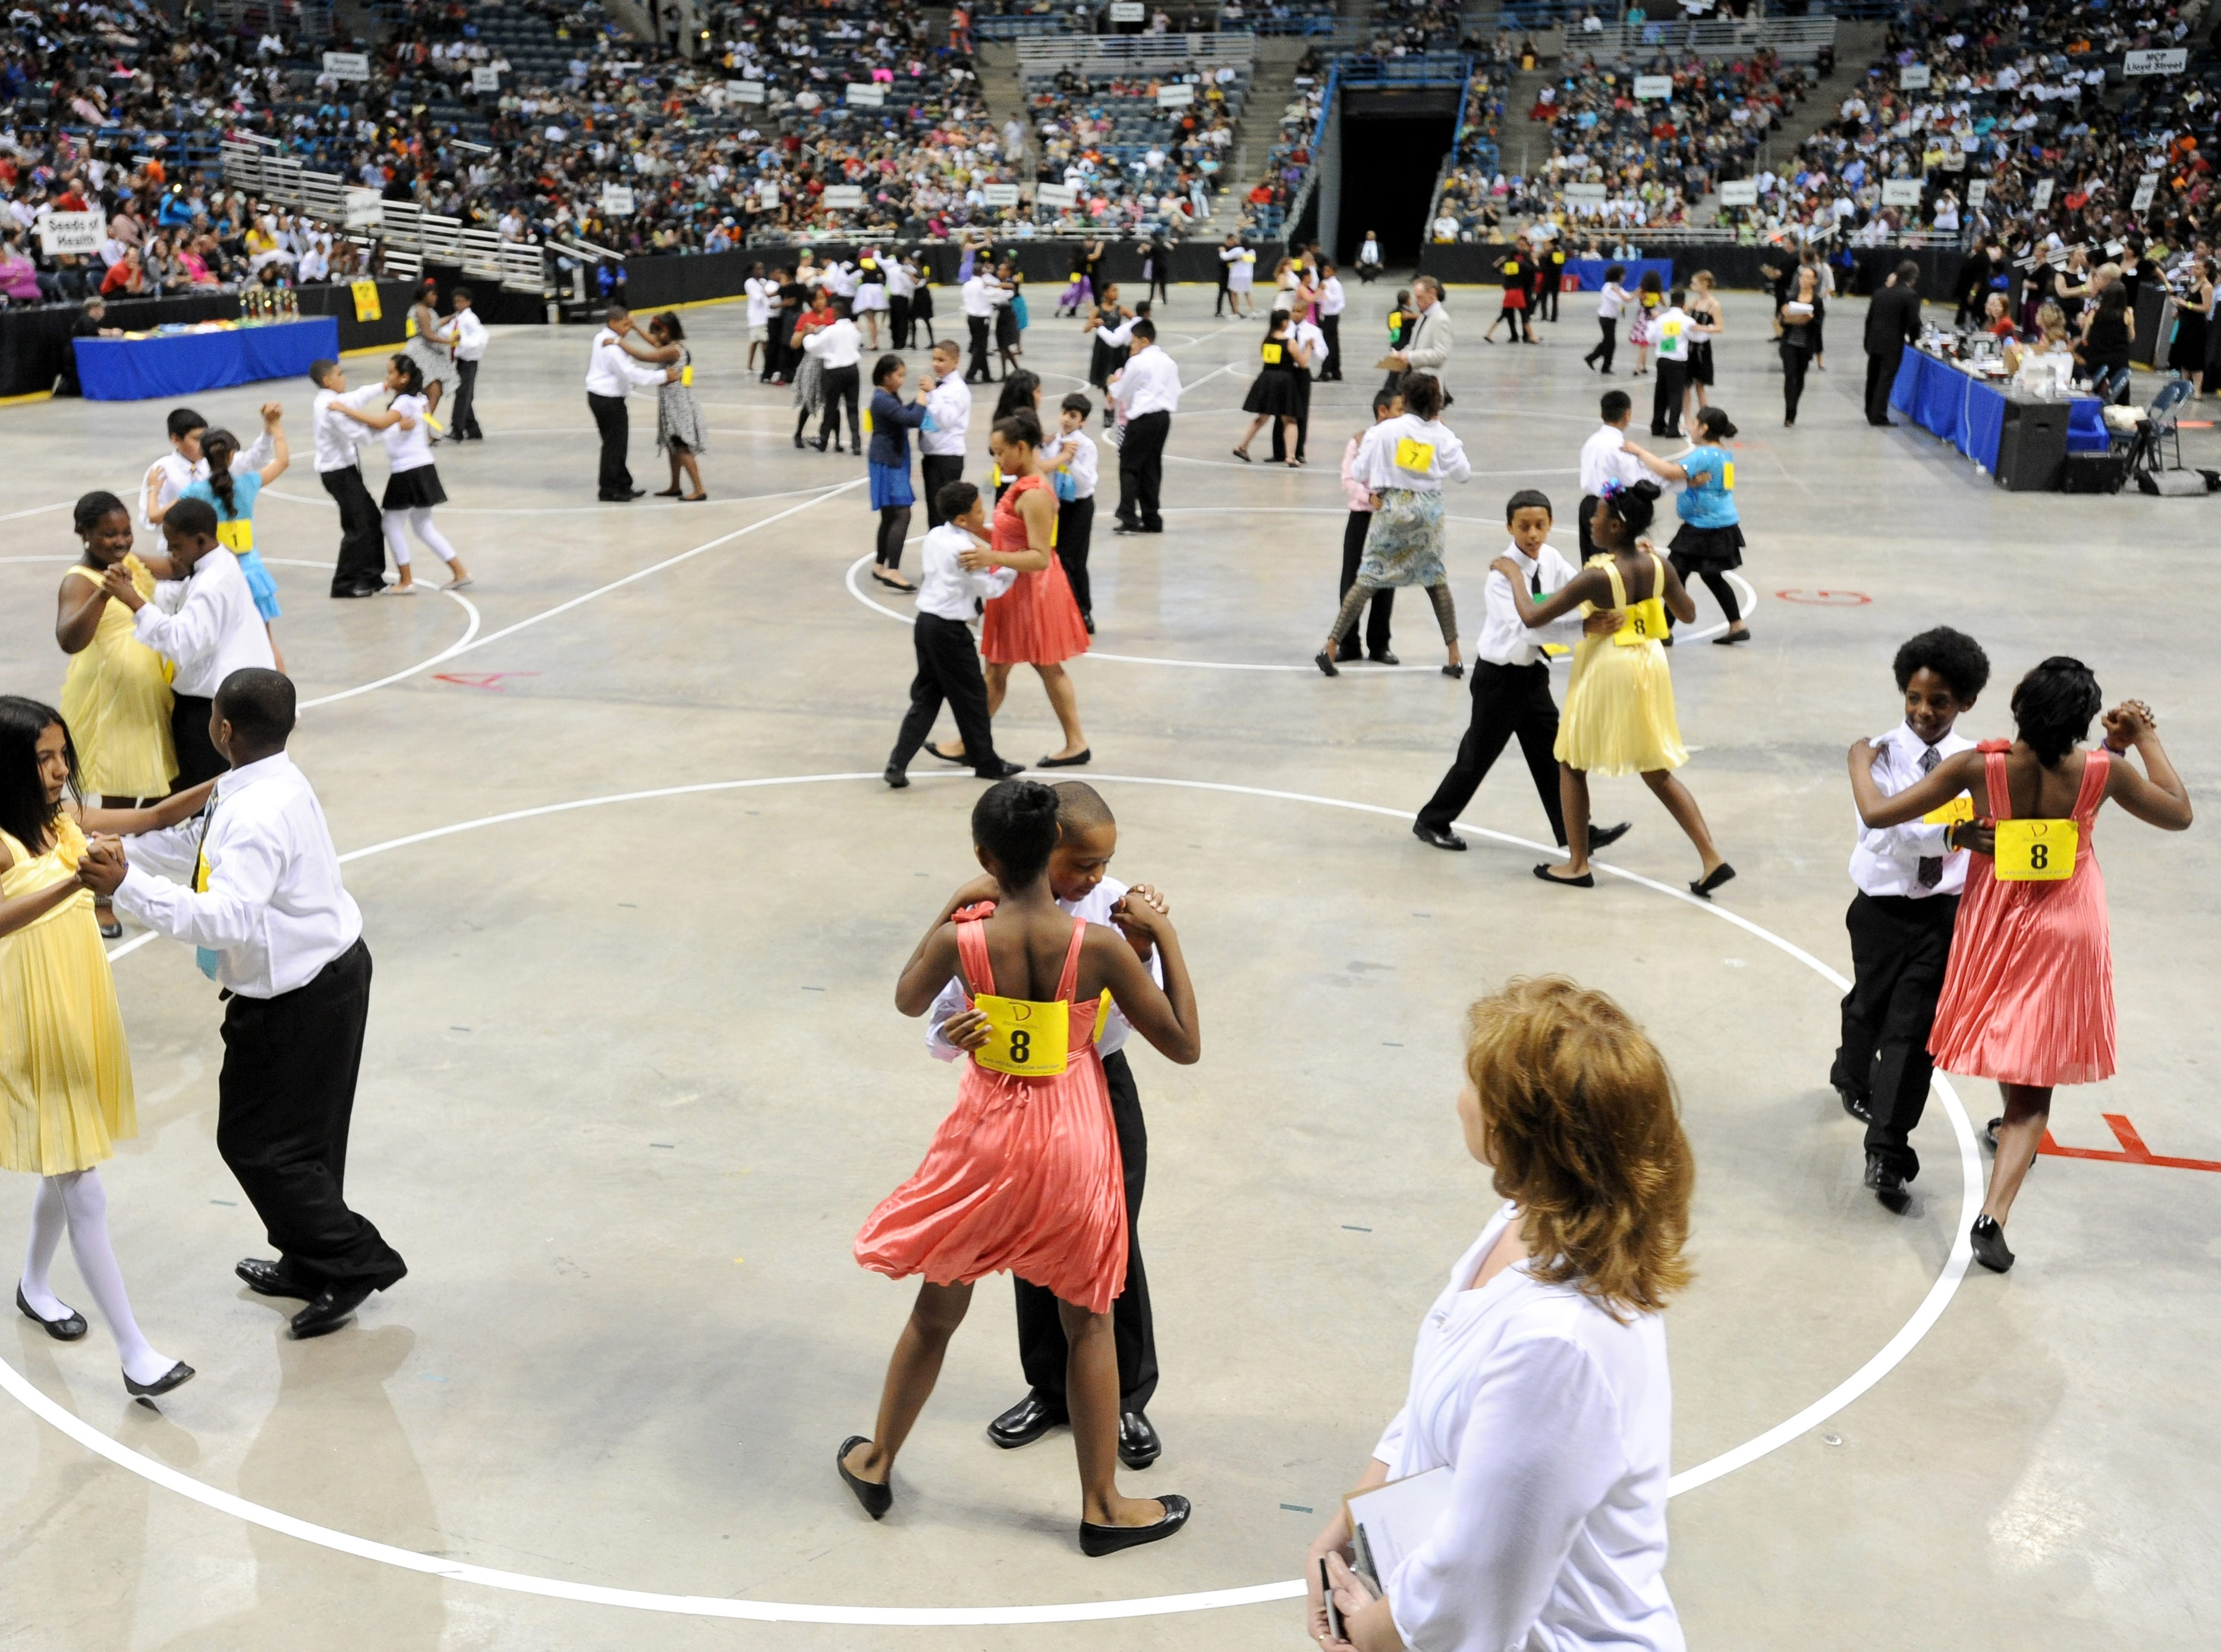 2013: A judge looks out onto a group of students as they perform the fox trot. Nearly 2,200 local students from 43 area schools perform and compete in the Mad Hot Ballroom show at the Bradley Center.